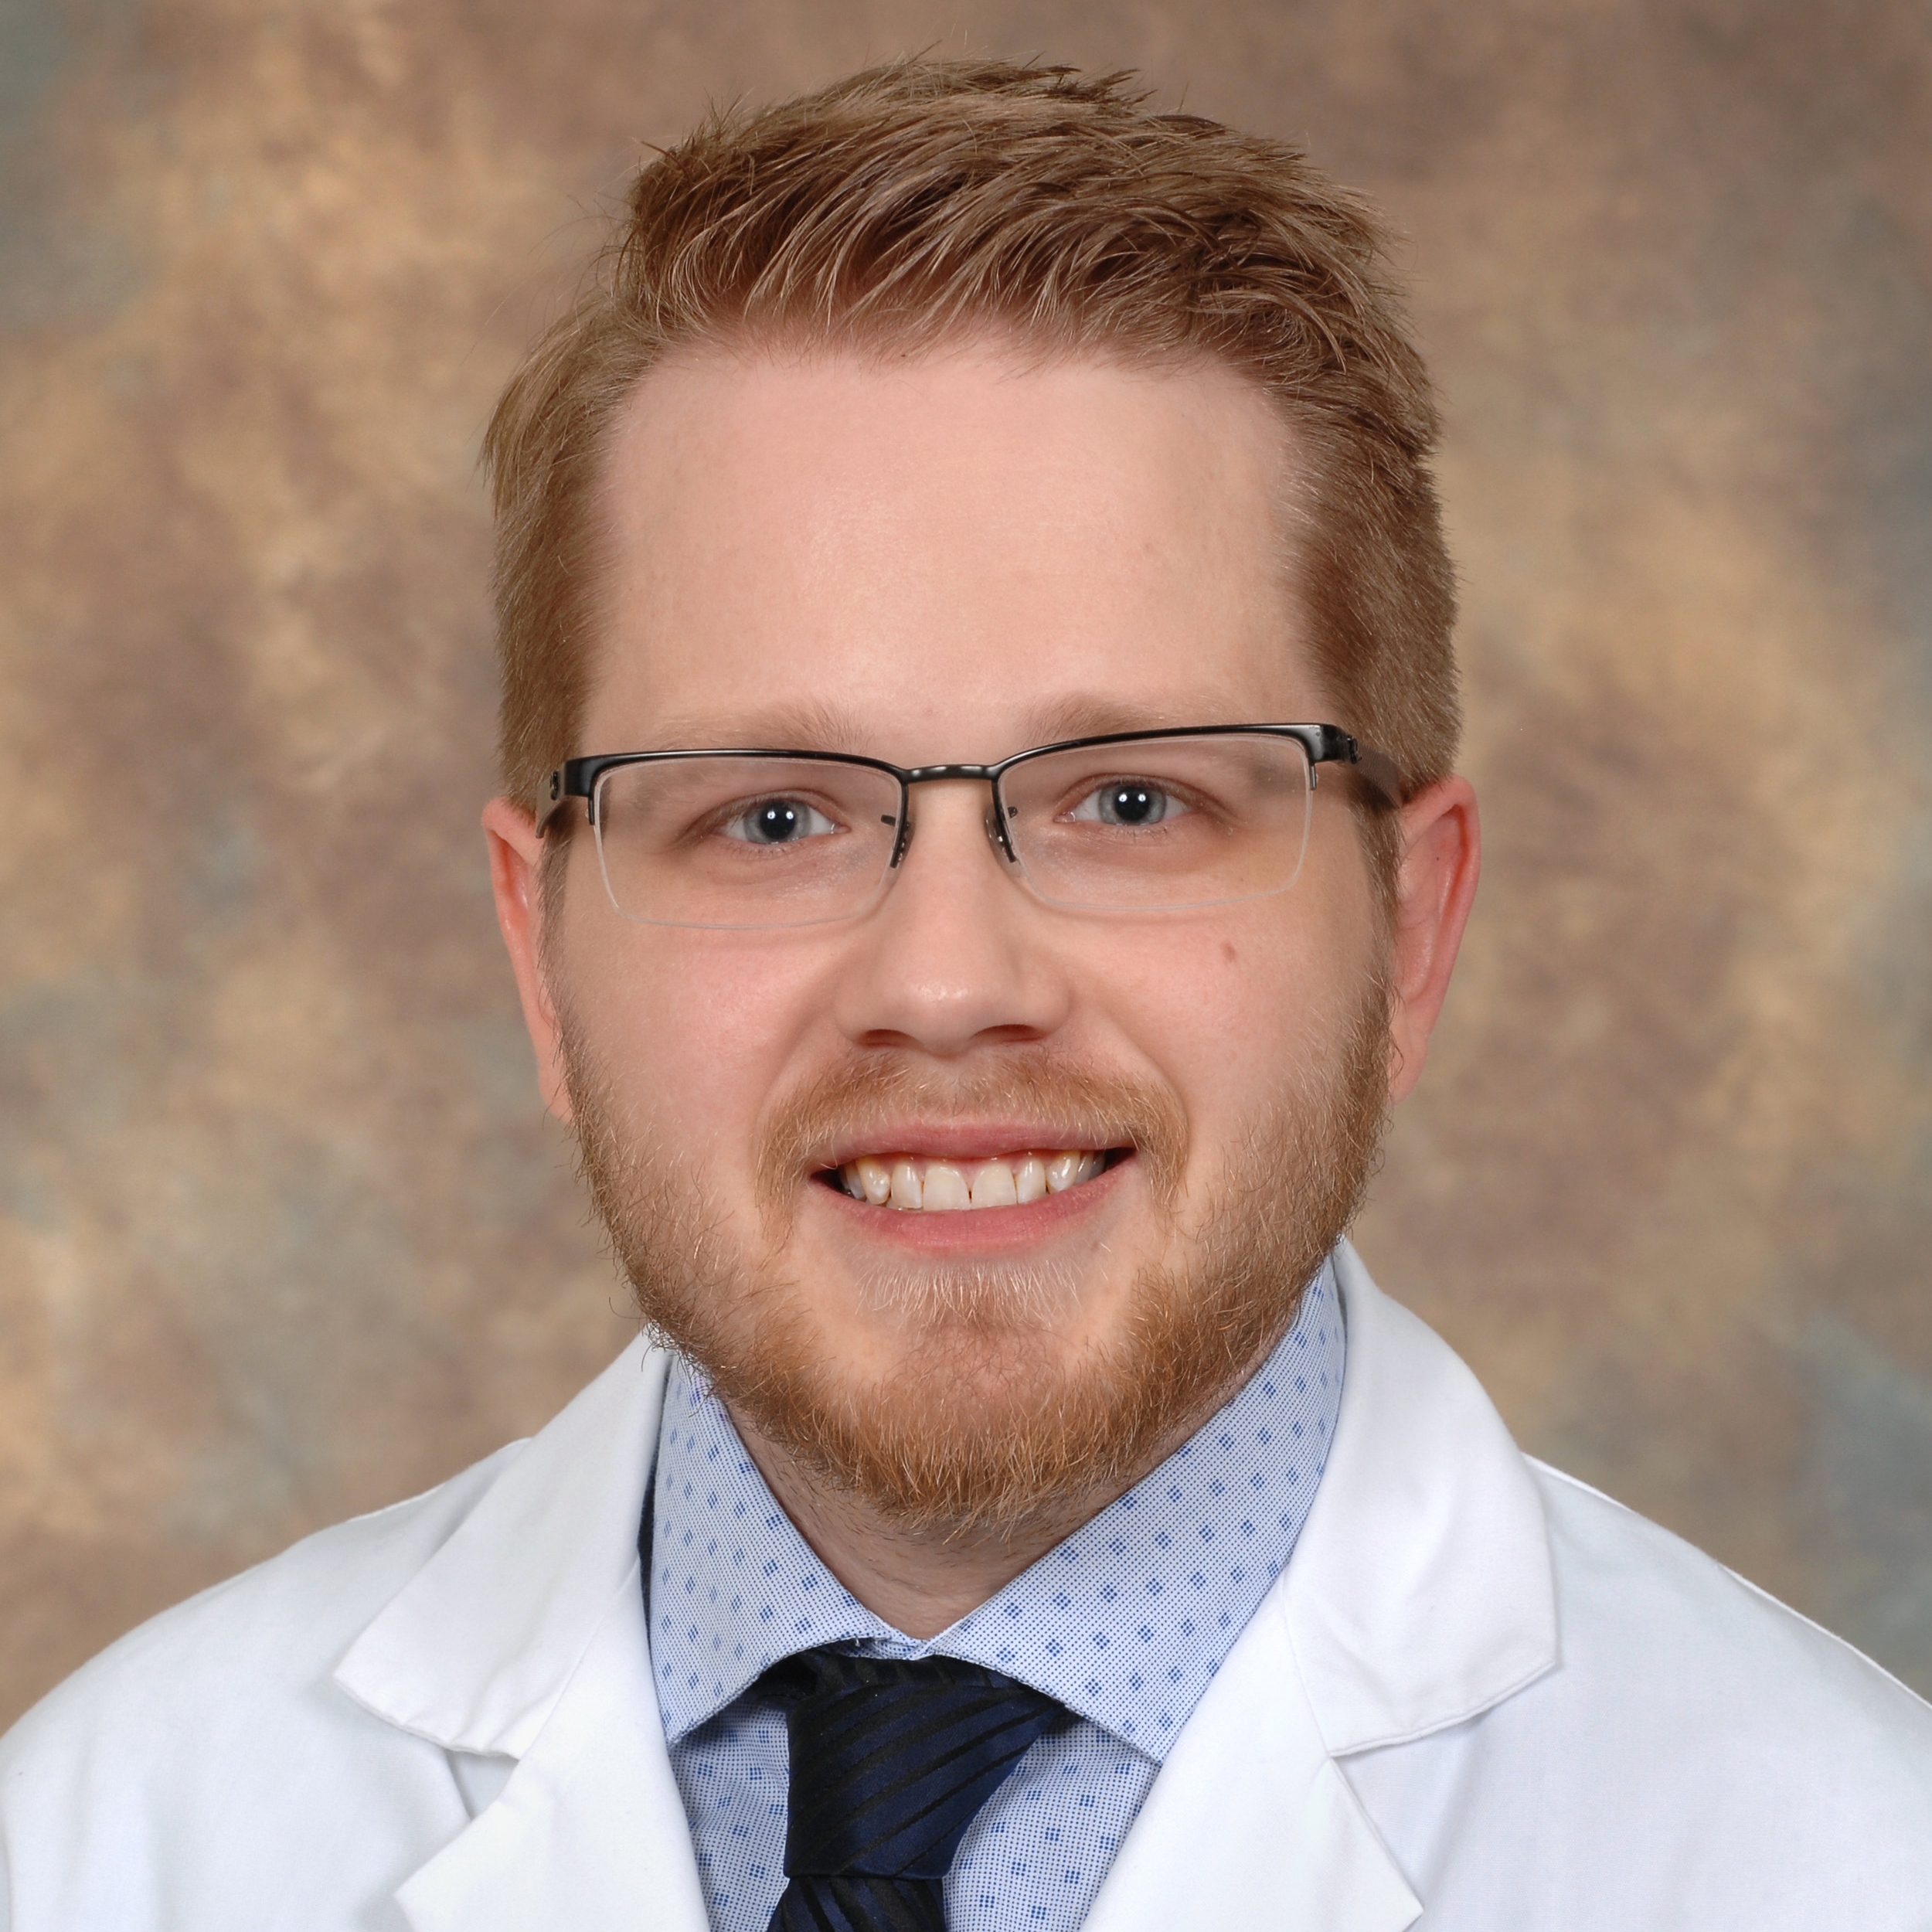 Corey Keeton -  Marshall University SOM  Continuing on with collaborative care and Psych consults here in Cincinnati as well as inpatient Family Medicine.   I am from Ashland, Ky and attended school at Marshall. I entered medical school with a strong interest in psychiatry, but quickly fell in love with primary care. The FMP program gives me a unique skill set that prepares me to practice comprehensive medicine in underserved populations. I also have a strong interest in teaching and plan to incorporate clinical education into my future career. Outside of the hospital, I enjoy spending time with friends and family. Rachel and I also read lots of YA novels.